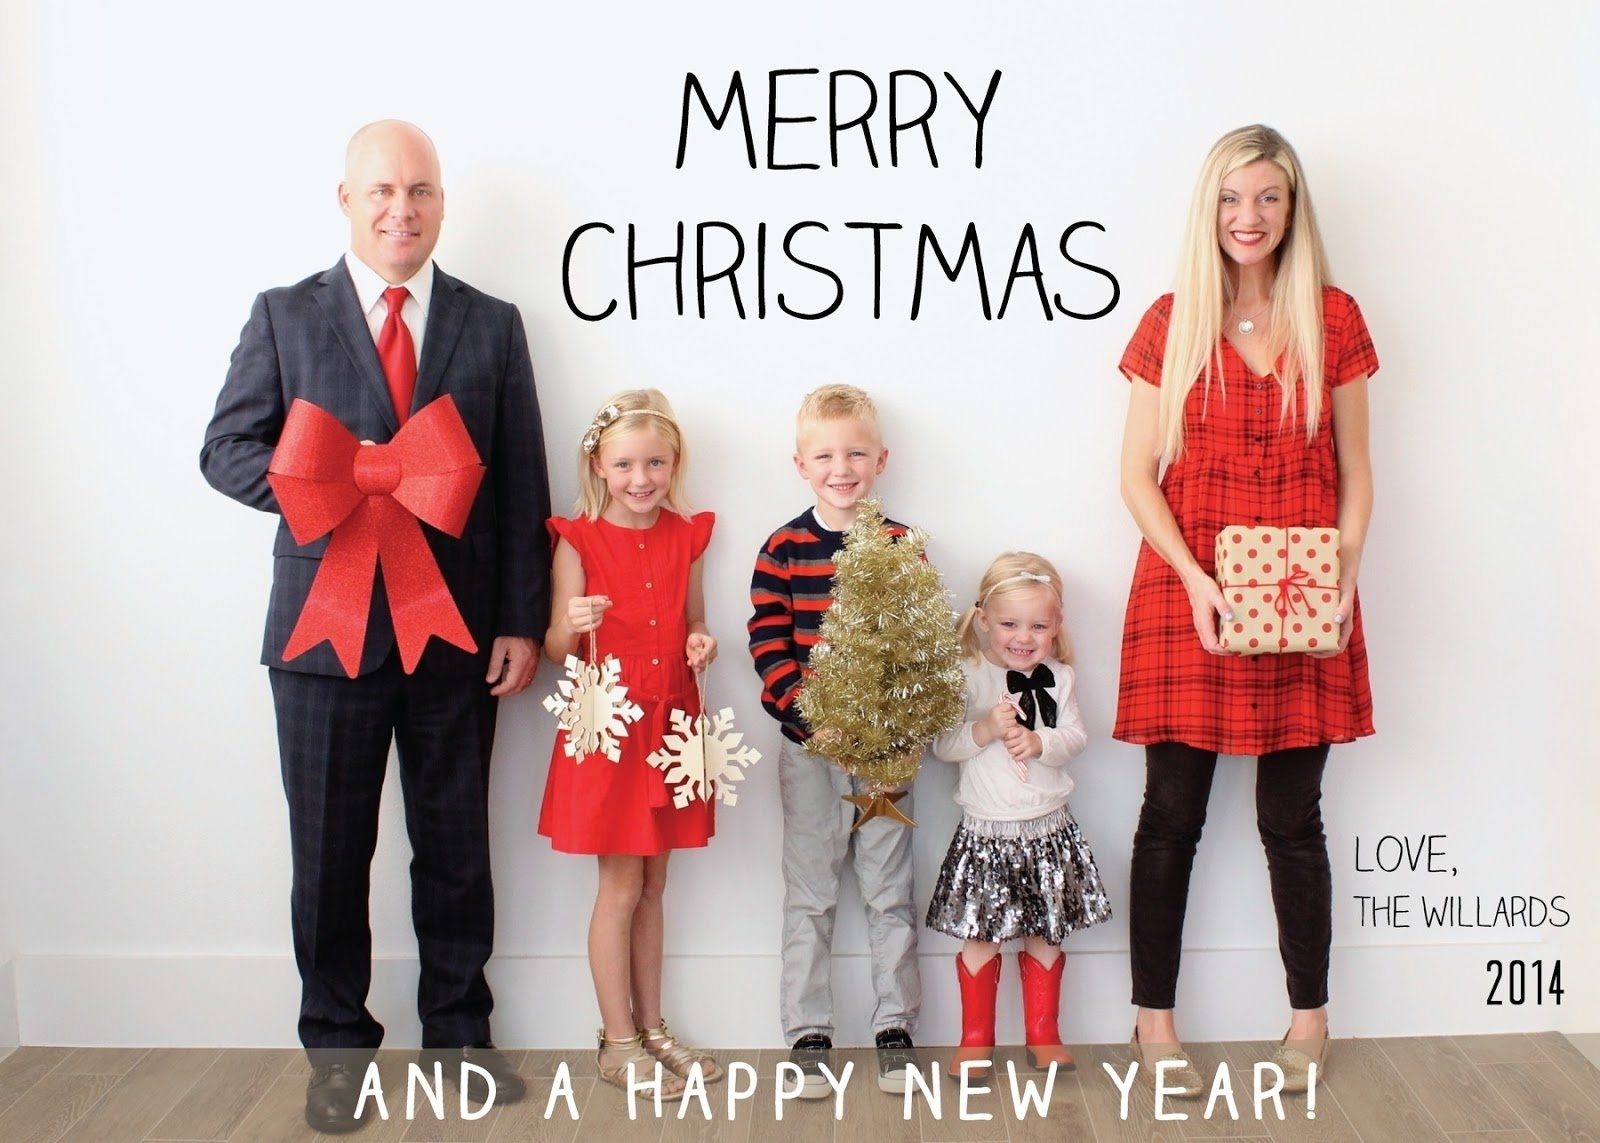 10 great funny family christmas card ideas a merry 2014 christmas card from our family to